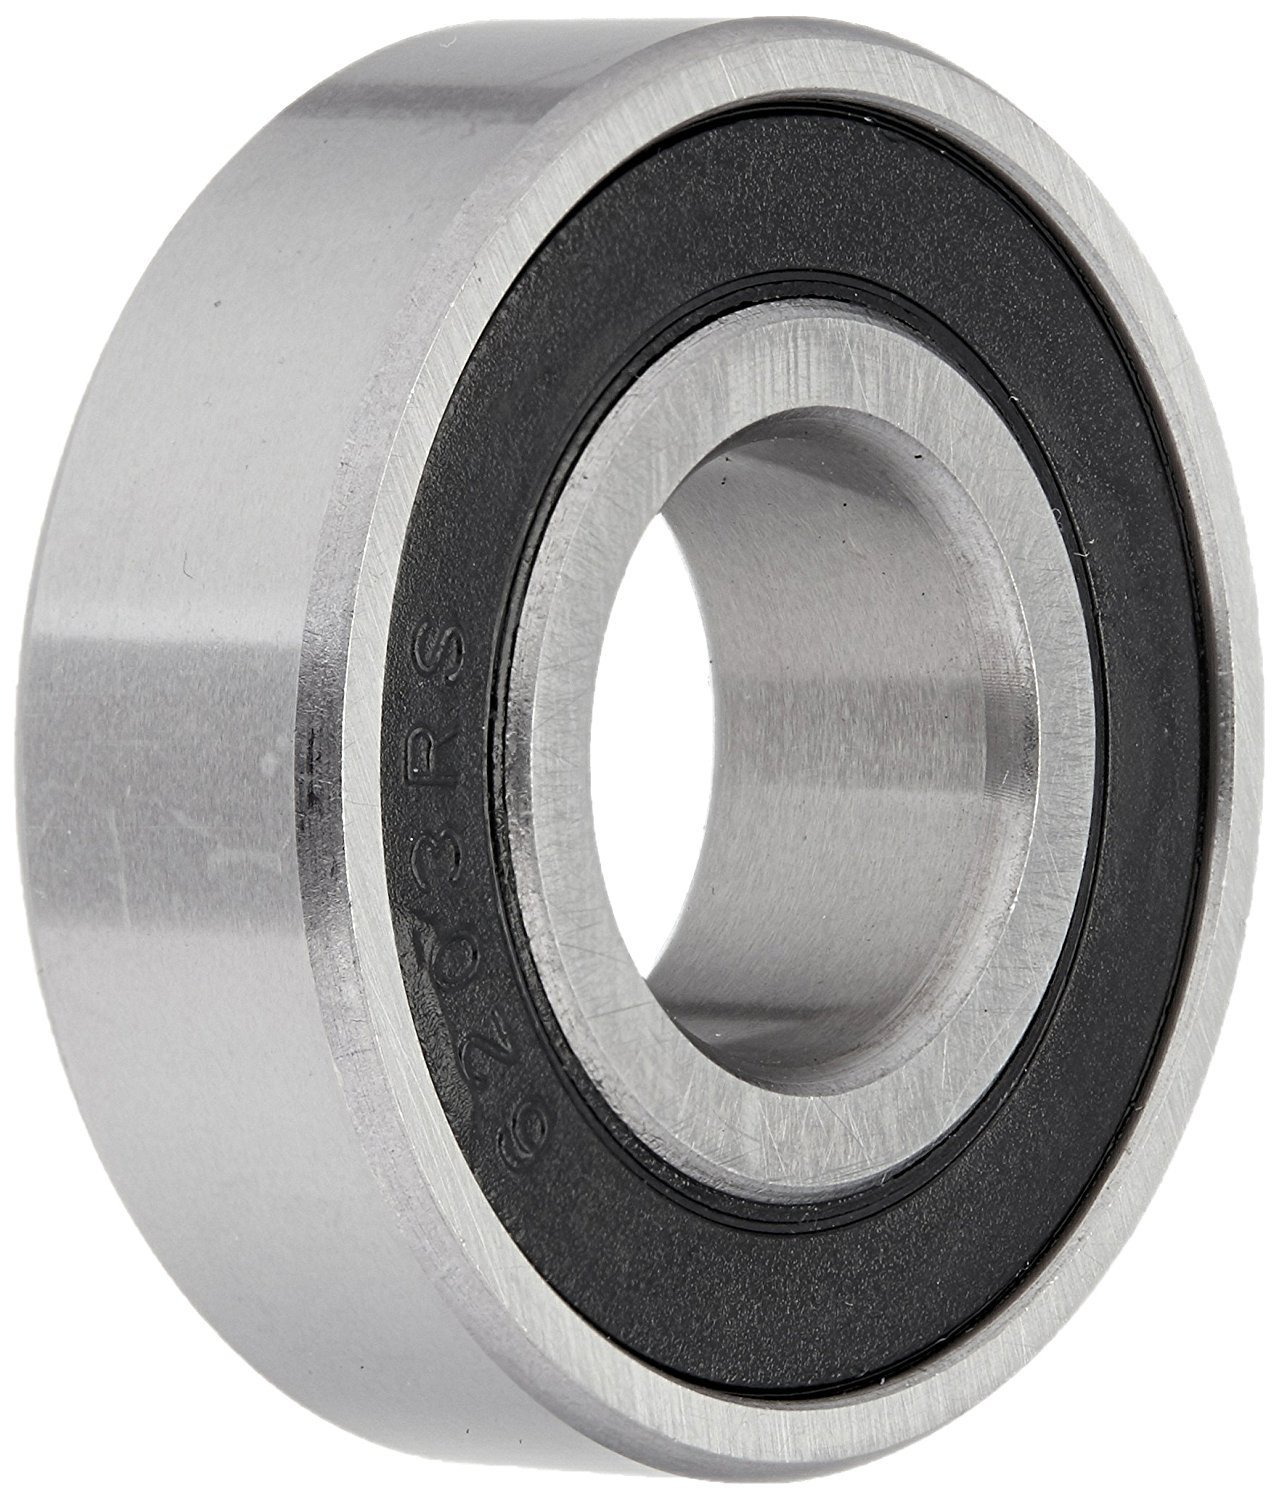 6203-2RS Sealed Bearings 17x40x12 Ball Bearing / Pre-Lubricated-200 Bearings by BC Precision